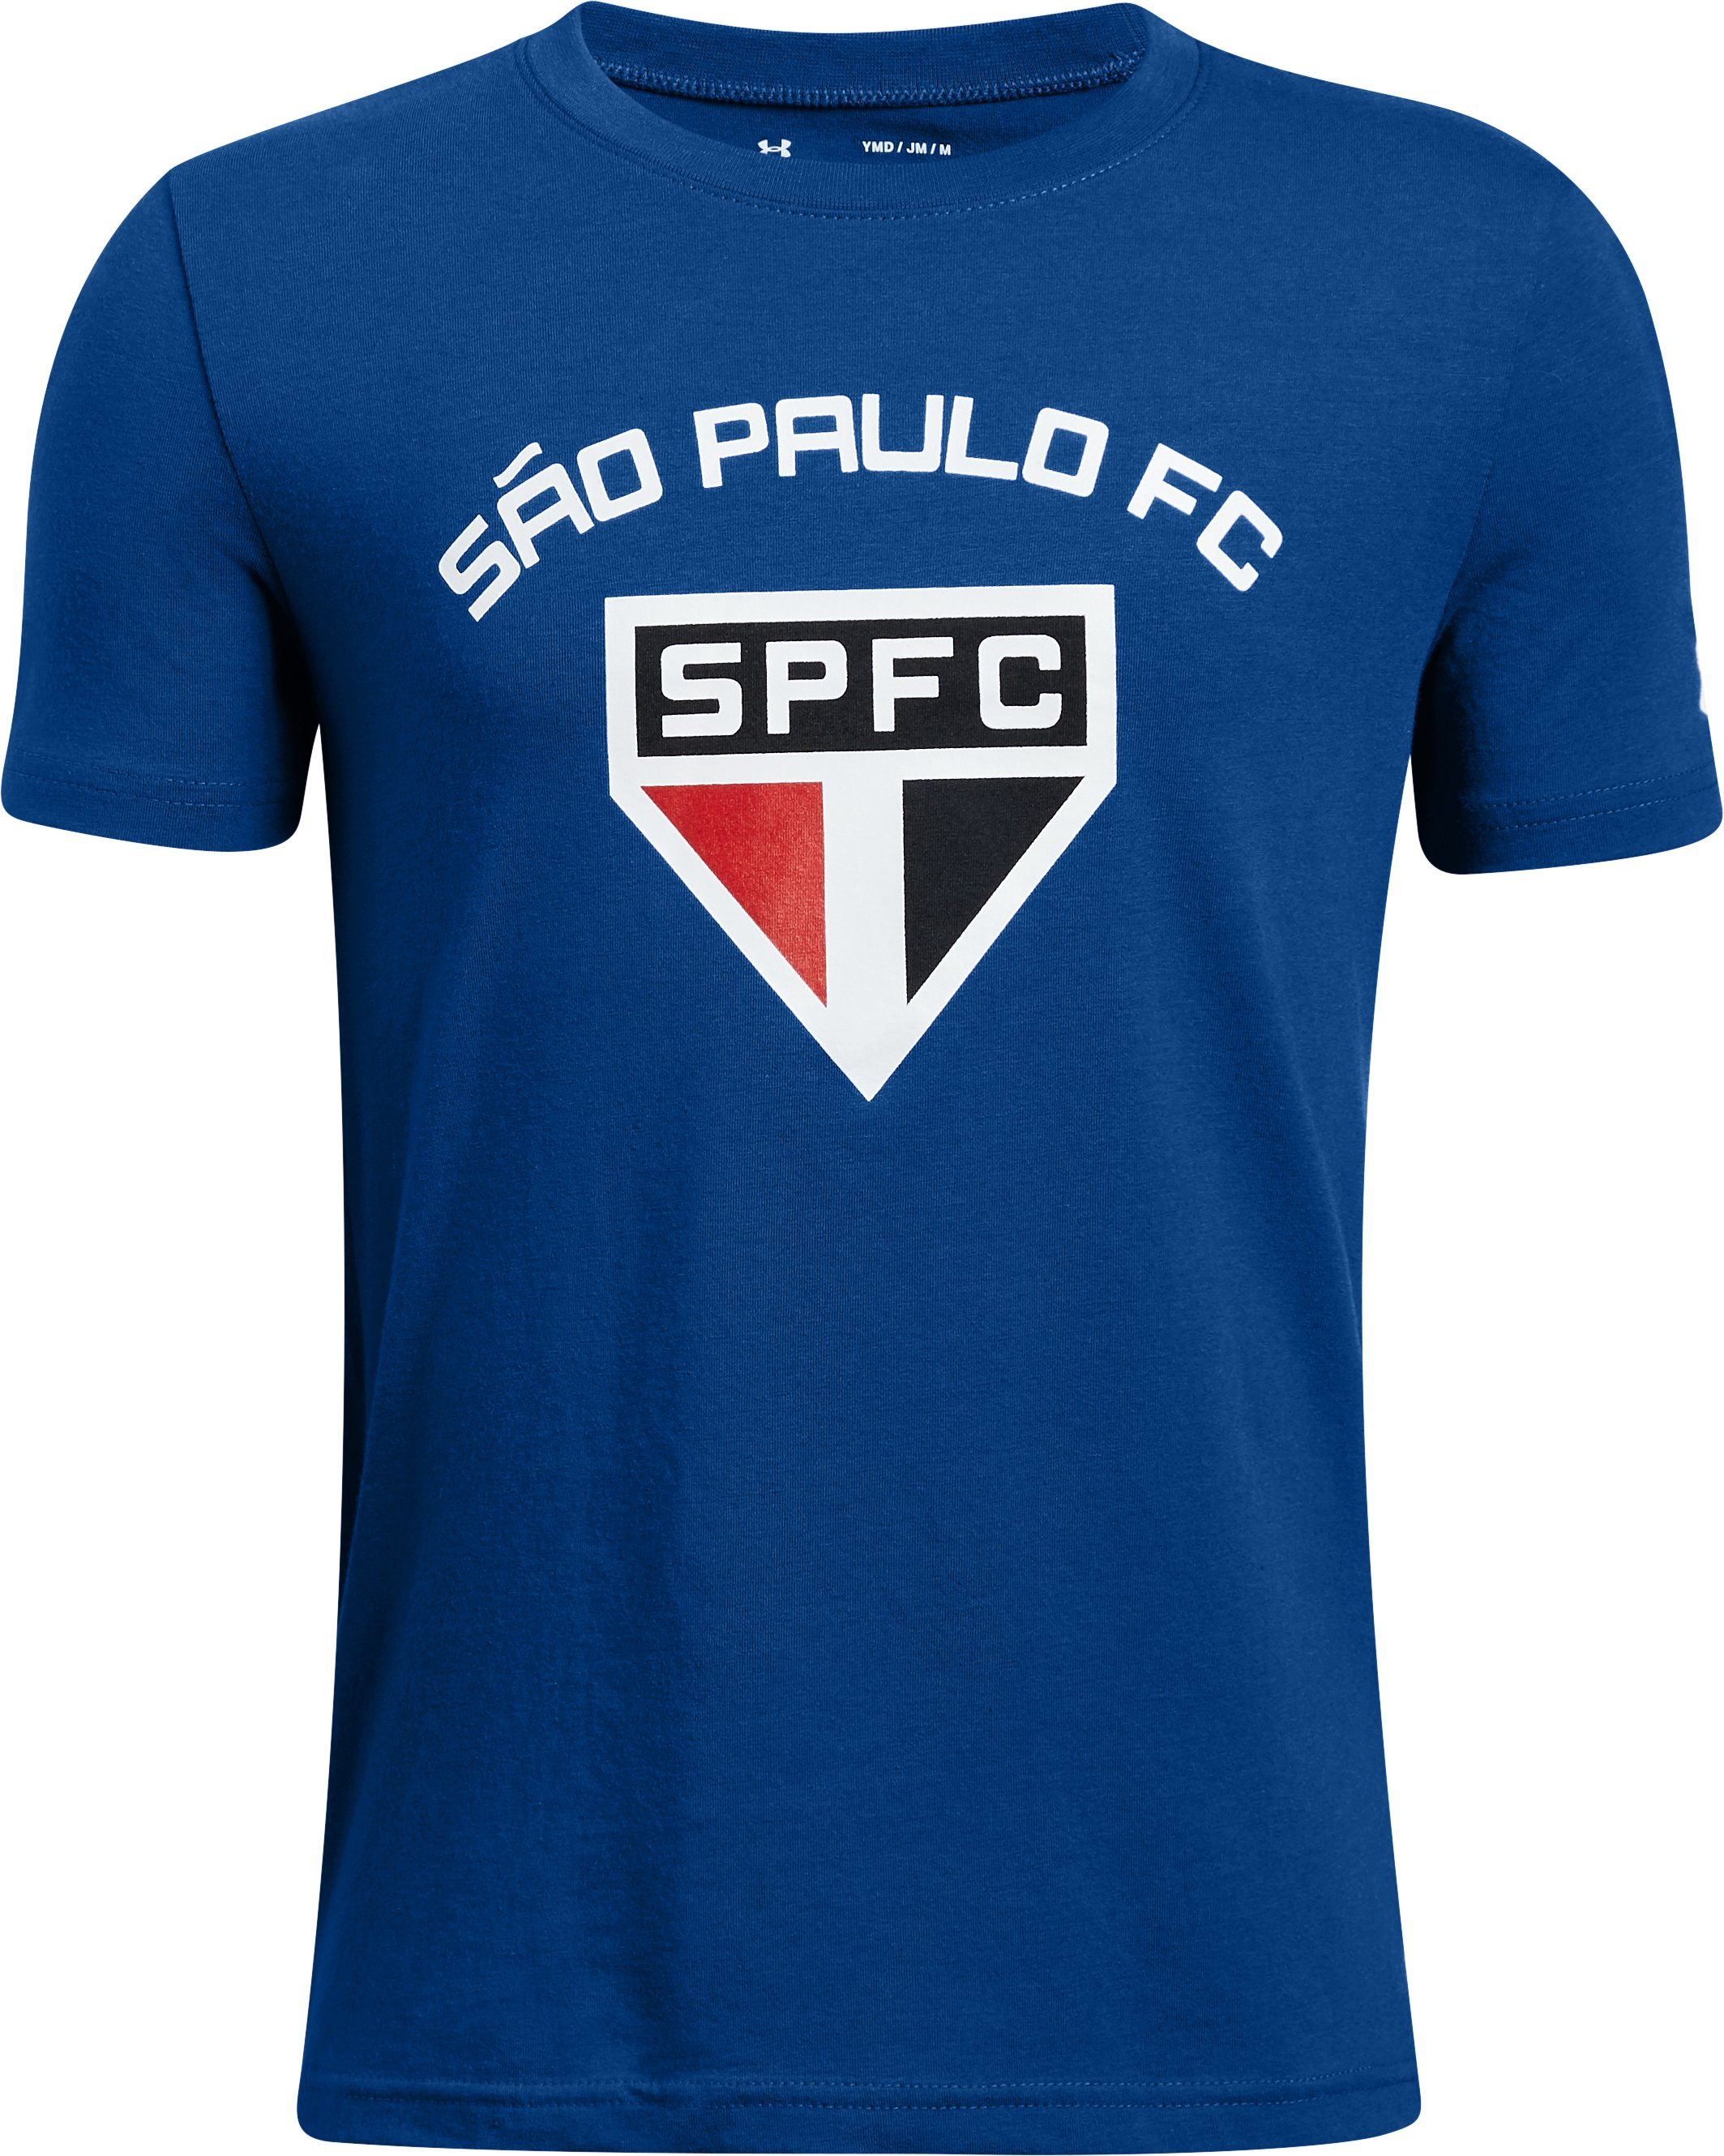 Kids' SPFC Commemorative T-Shirt, Royal